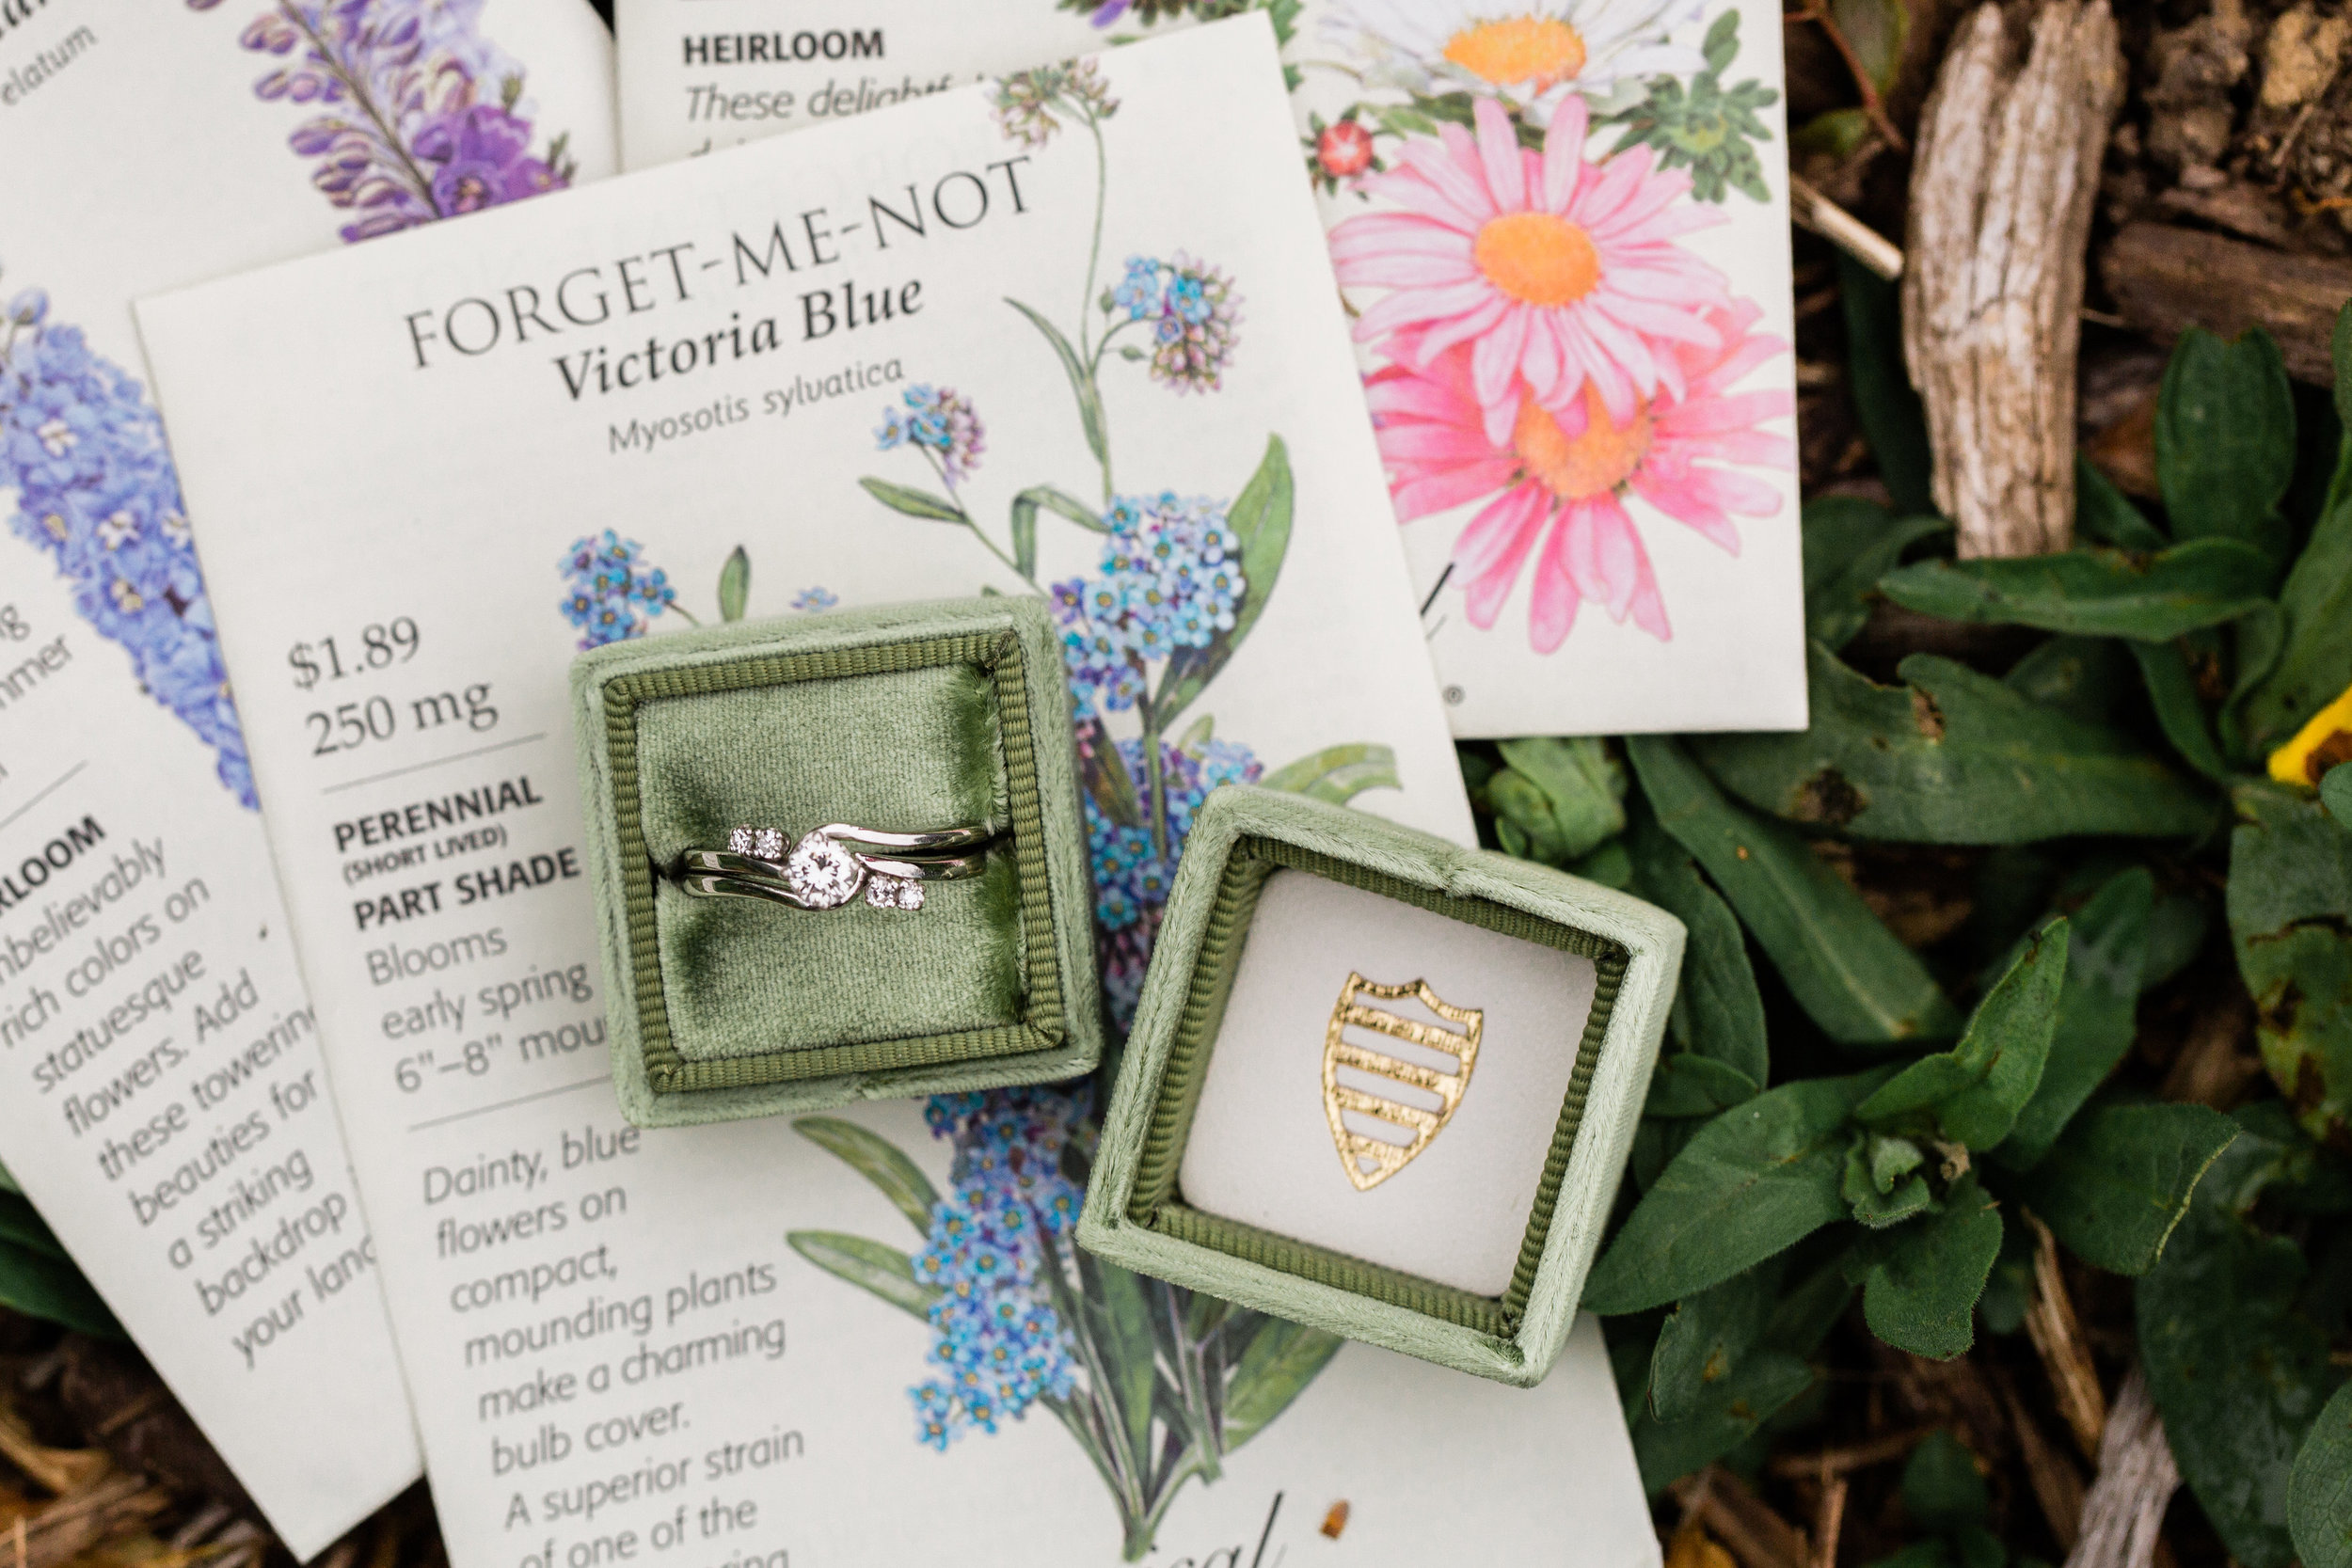 Kim's heirloom ring, in a #MrsBox as photographed by True Grace Creative